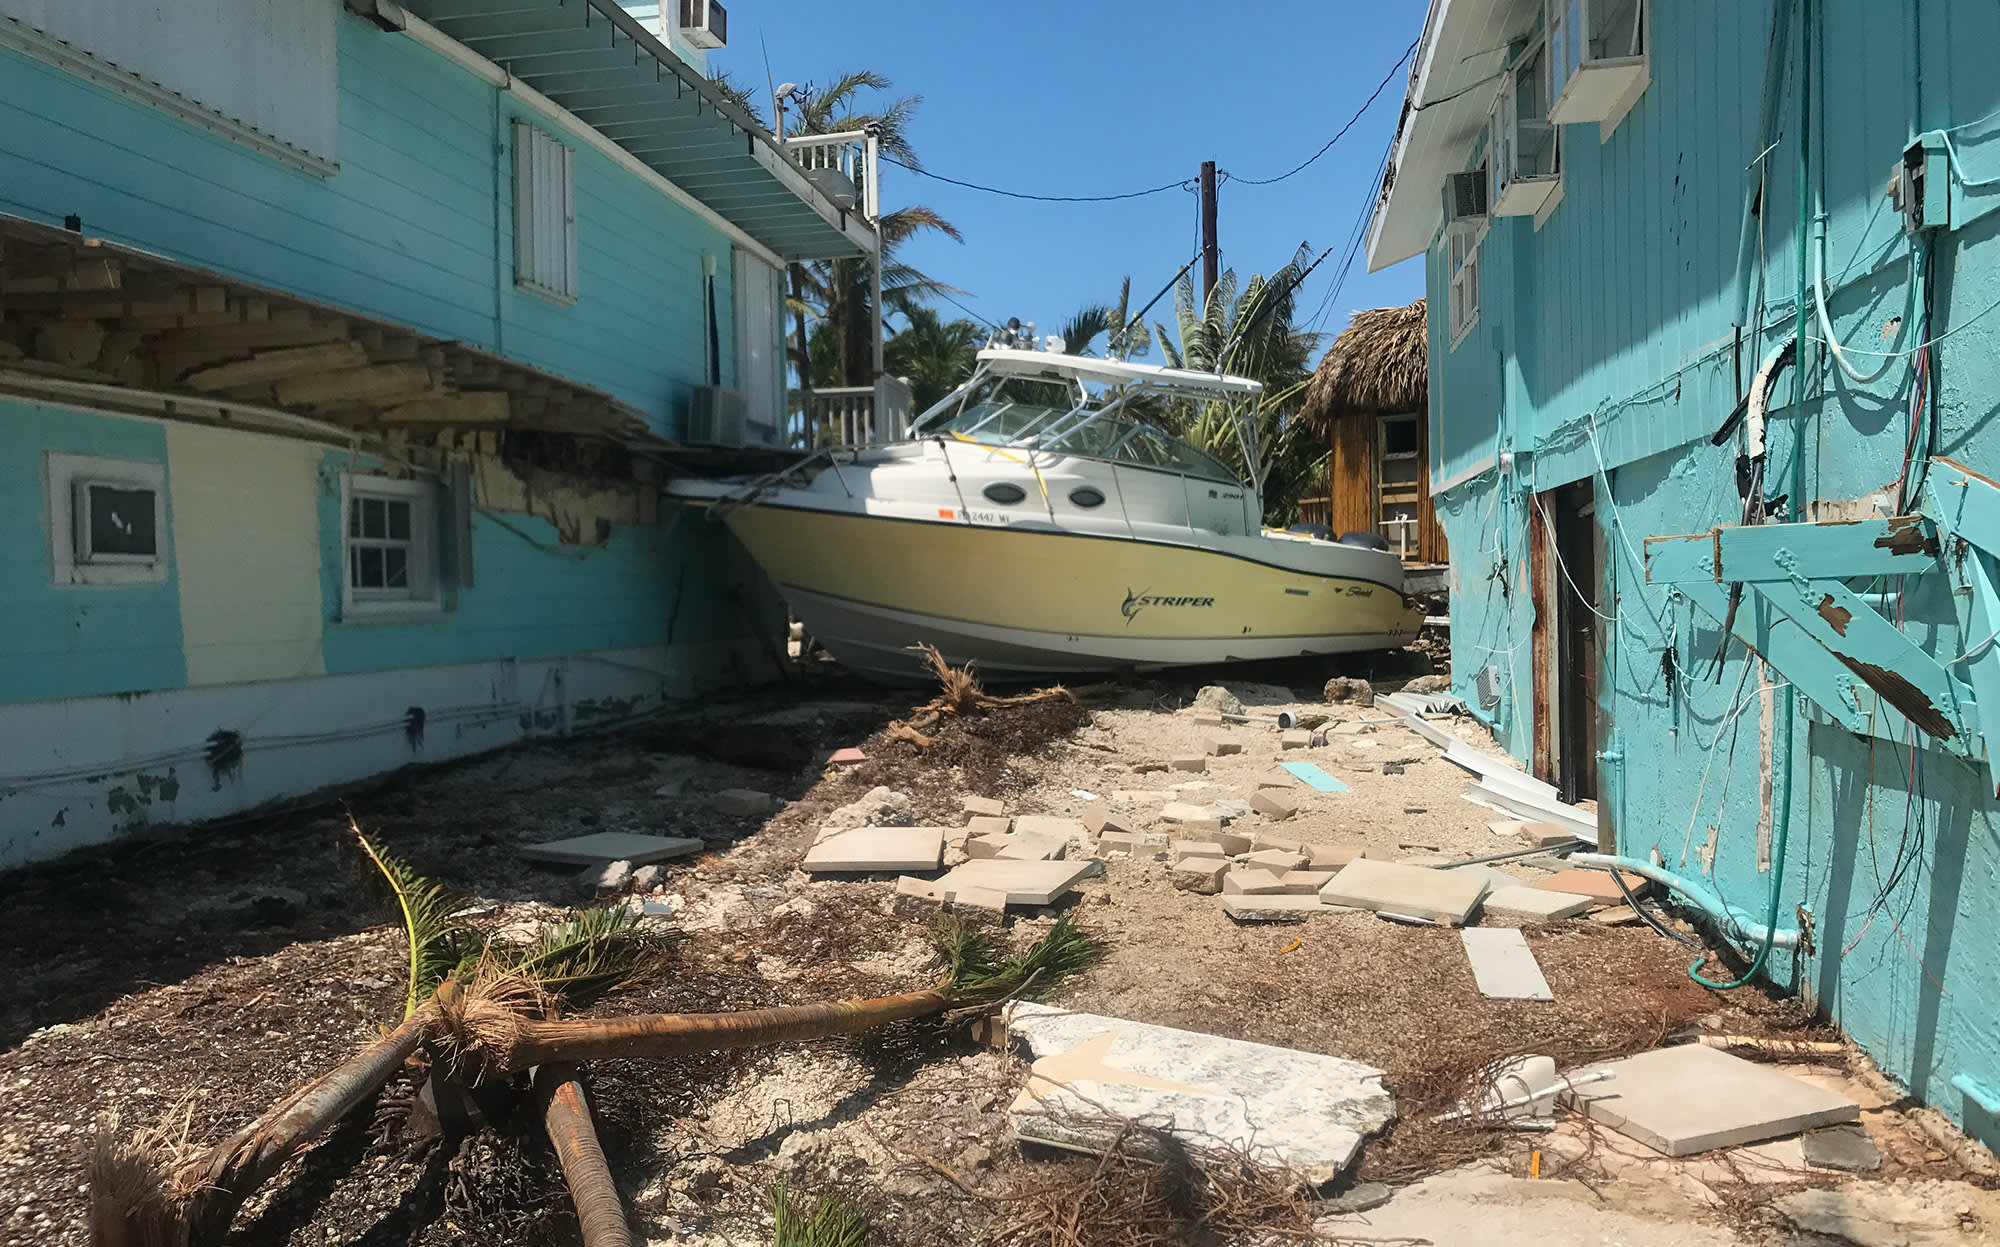 Hurricane Irma leaves the Florida Keys bowed but unbroken